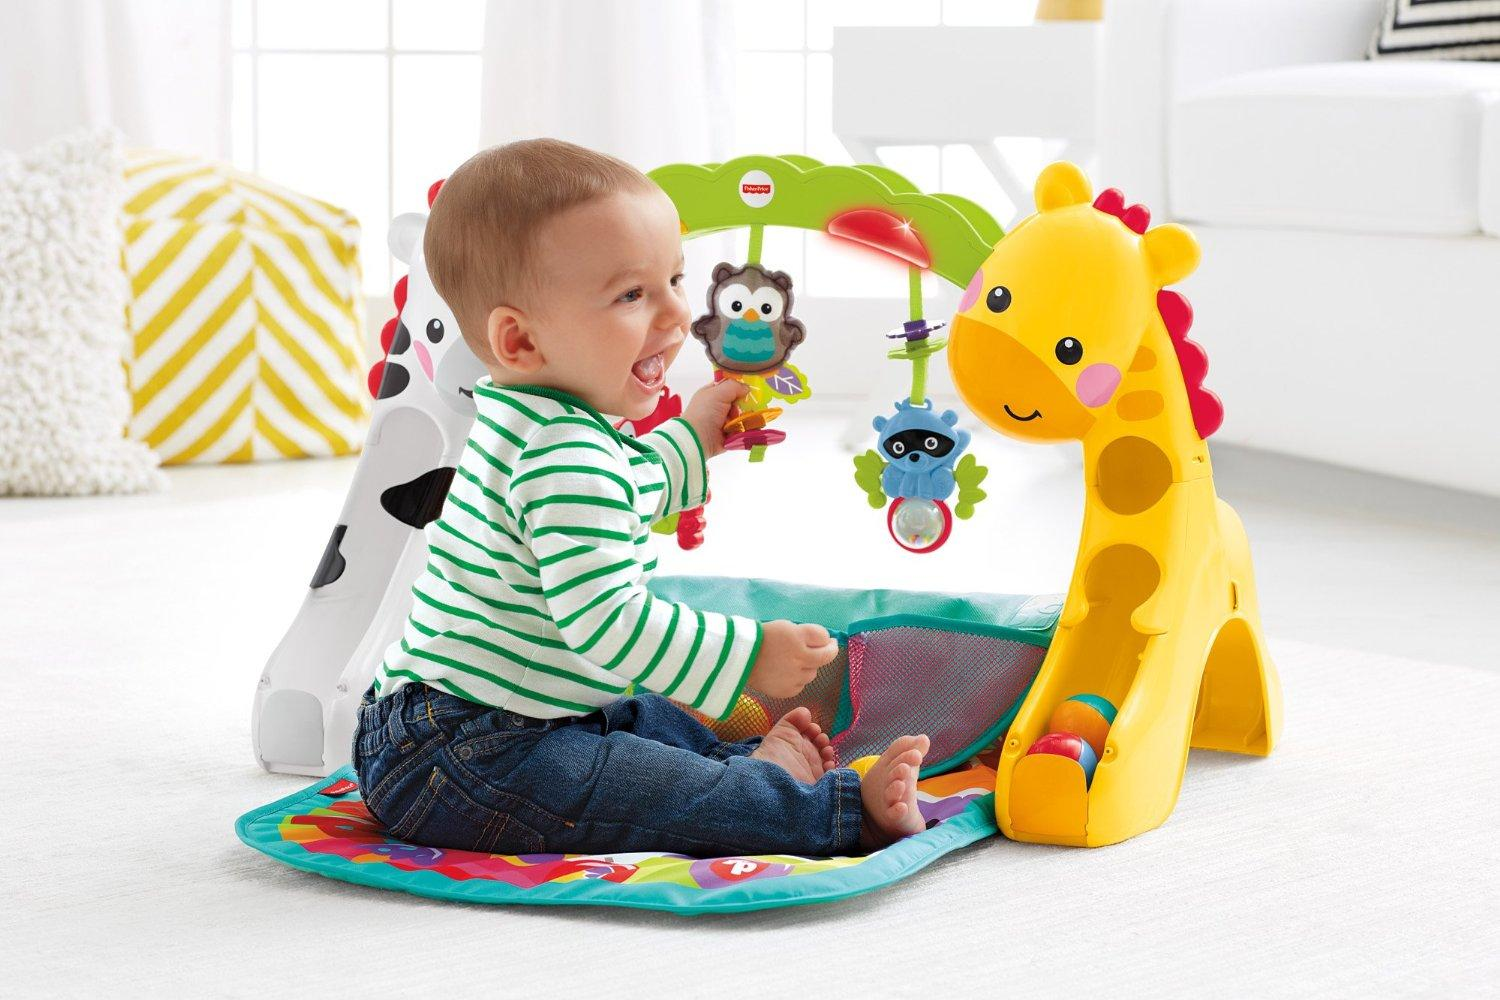 fisher price tapis de jeu volutif musical pour b b avec plus de 12 activit s et jouets d s la. Black Bedroom Furniture Sets. Home Design Ideas